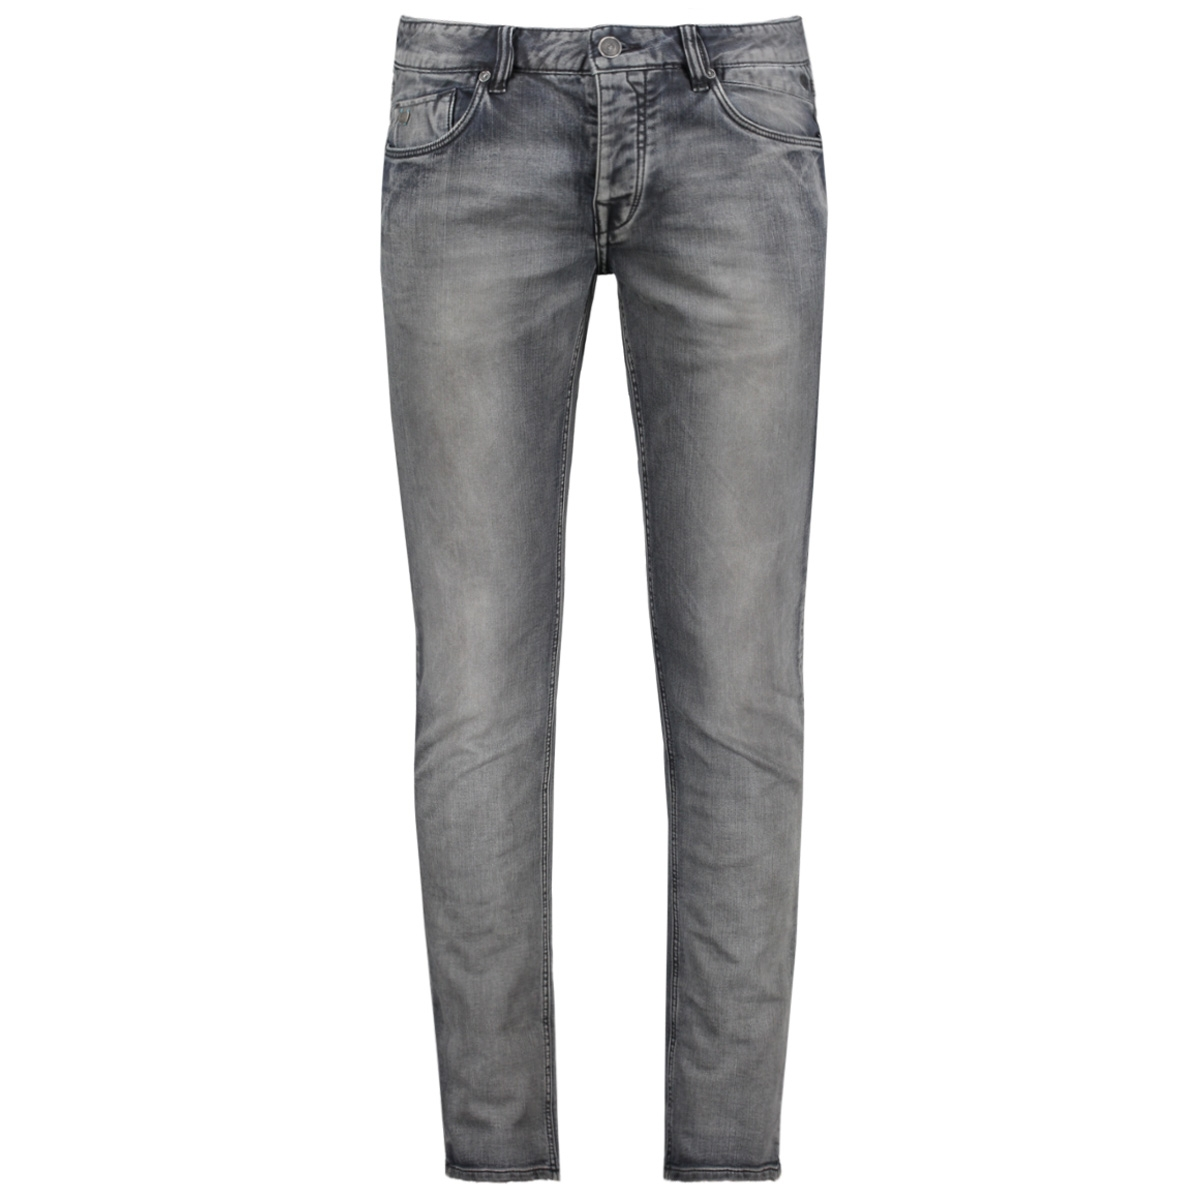 ctr175203 cast iron jeans ing